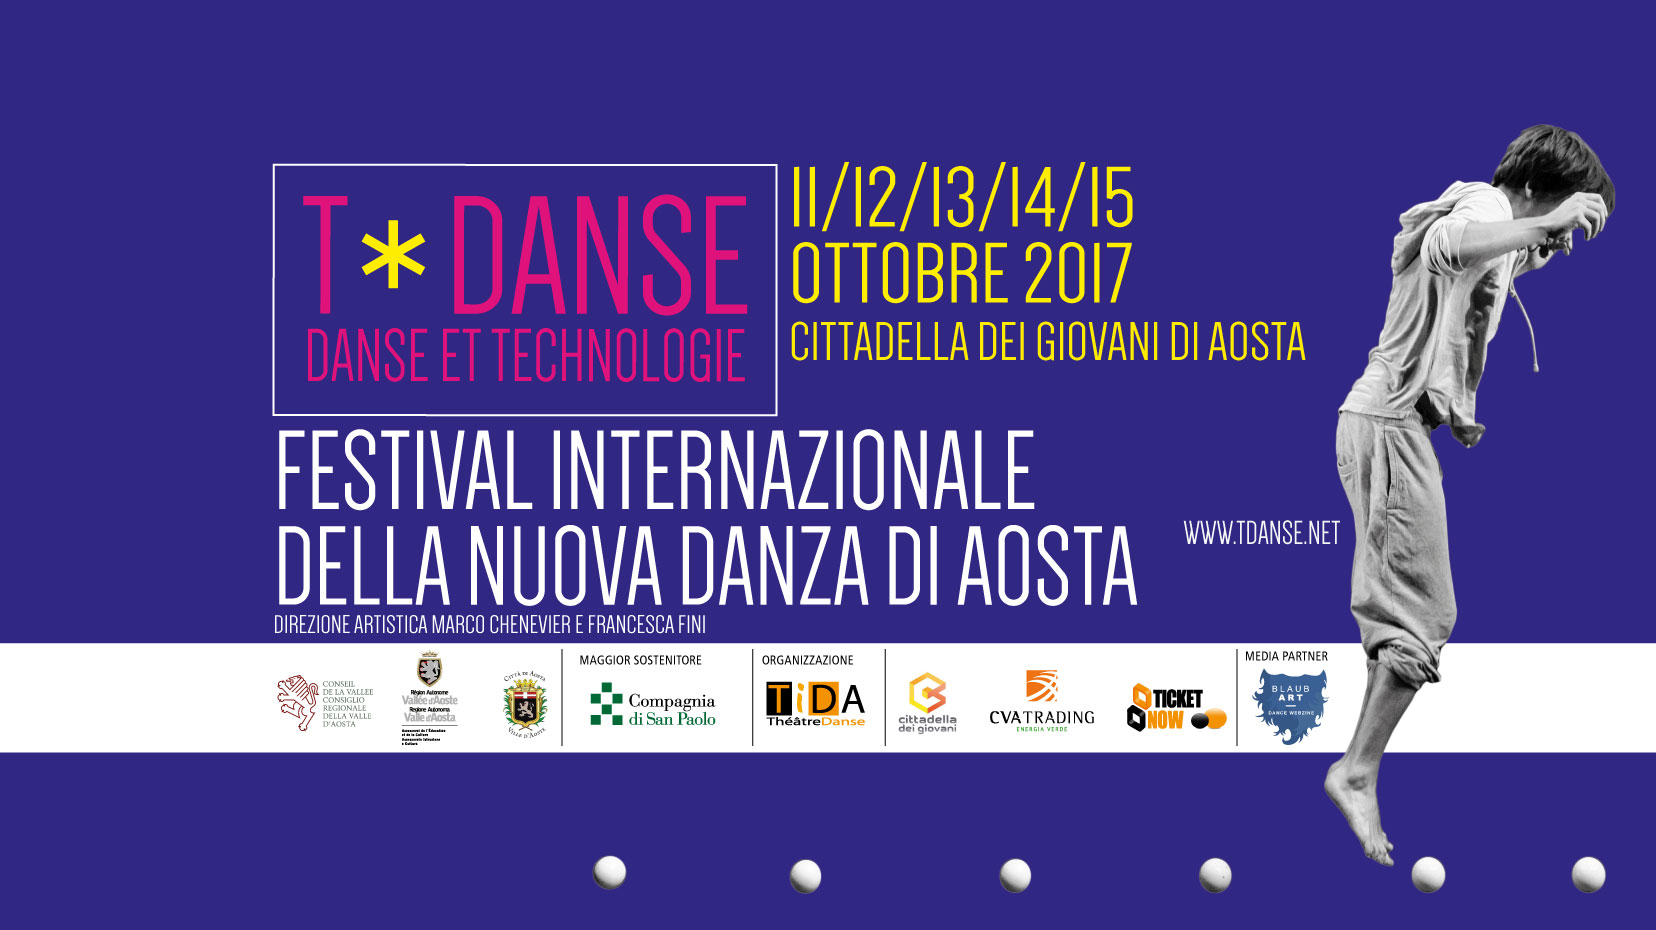 BodyQuake at T*Danse Festival in Aosta